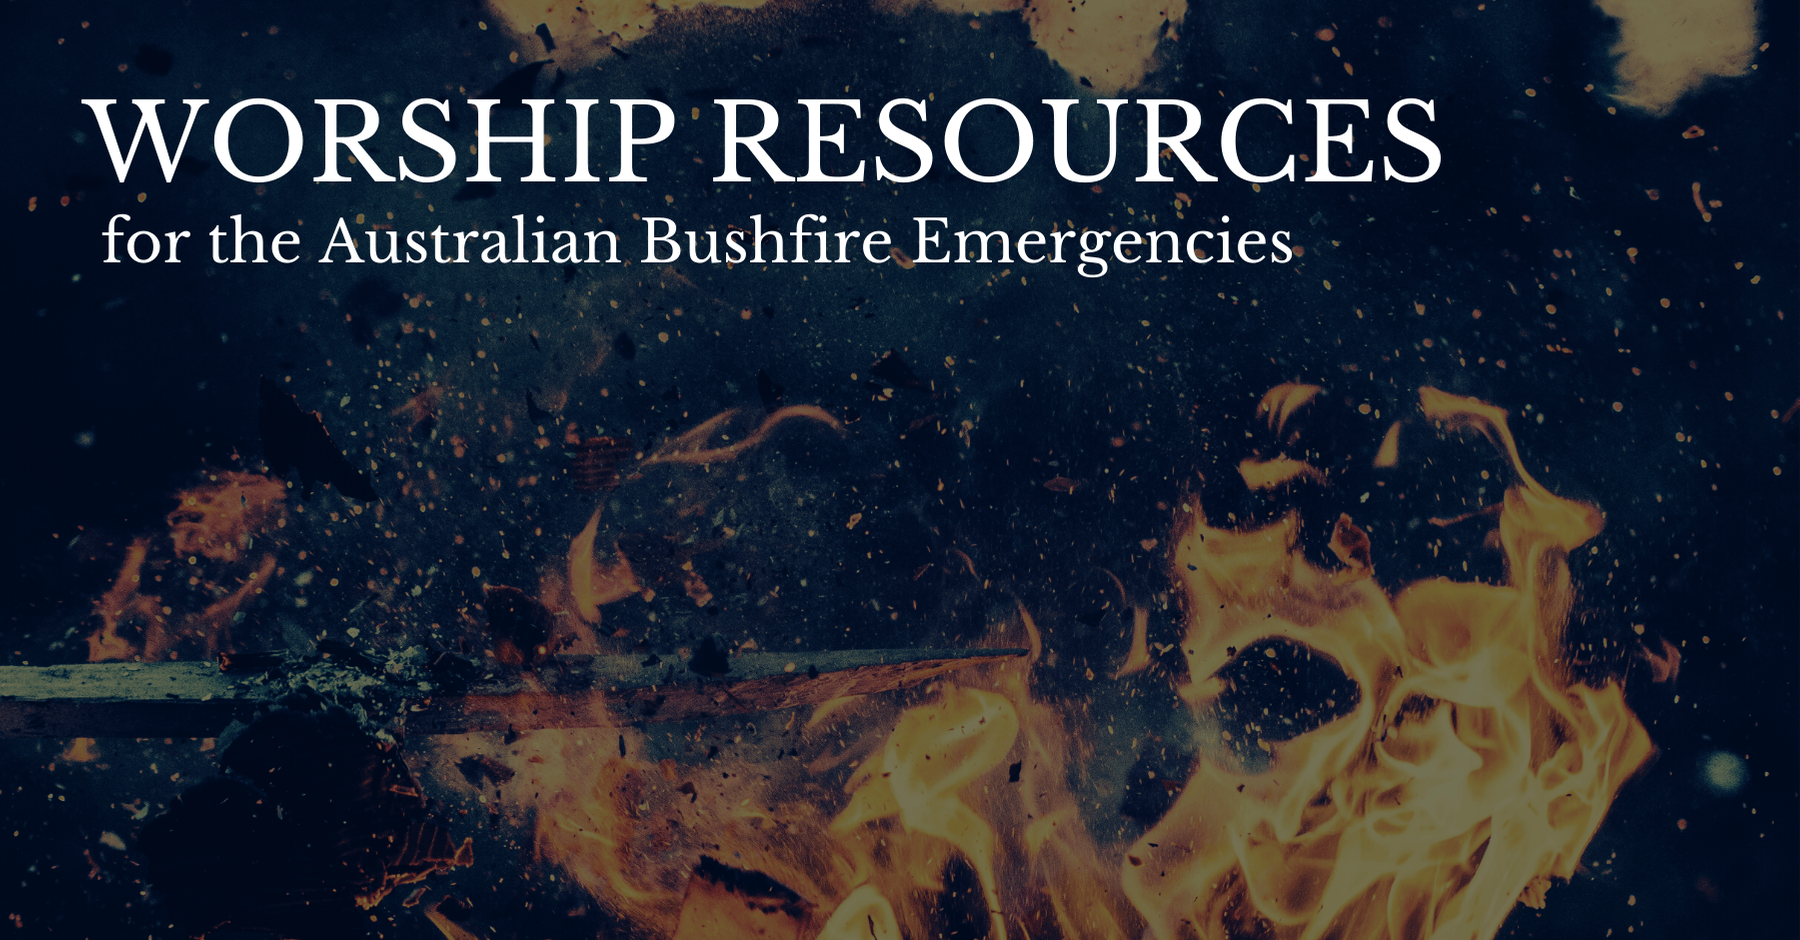 Worship Resources for Bushfire Emergencies